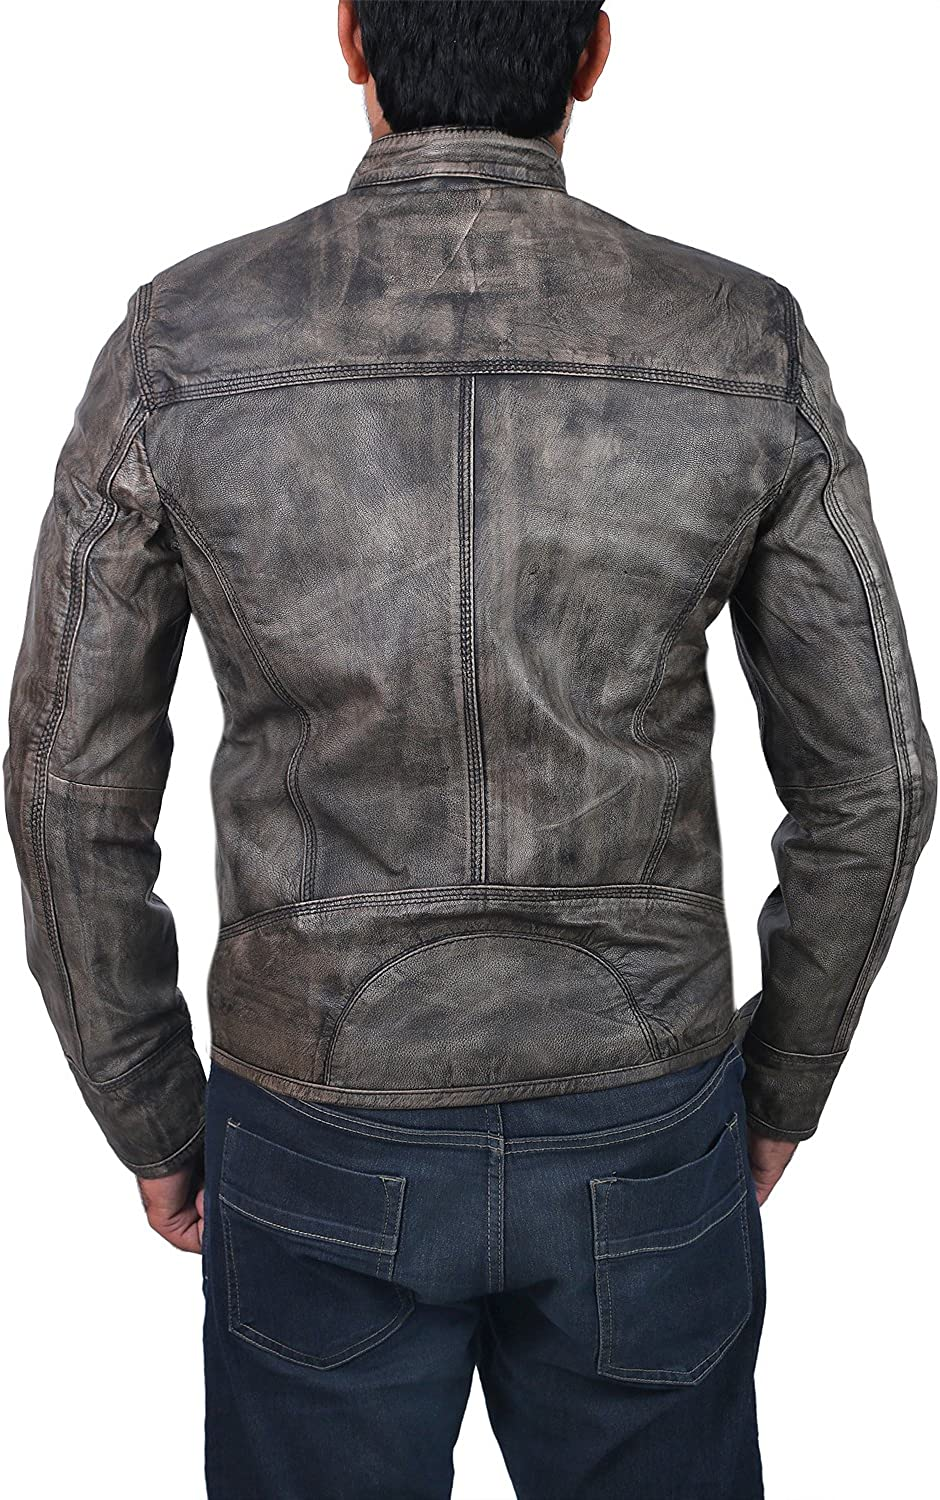 Triple Stitch Cafe Racer Distressed Wax Mens Biker Vintage Scooter Style Leather Jacket